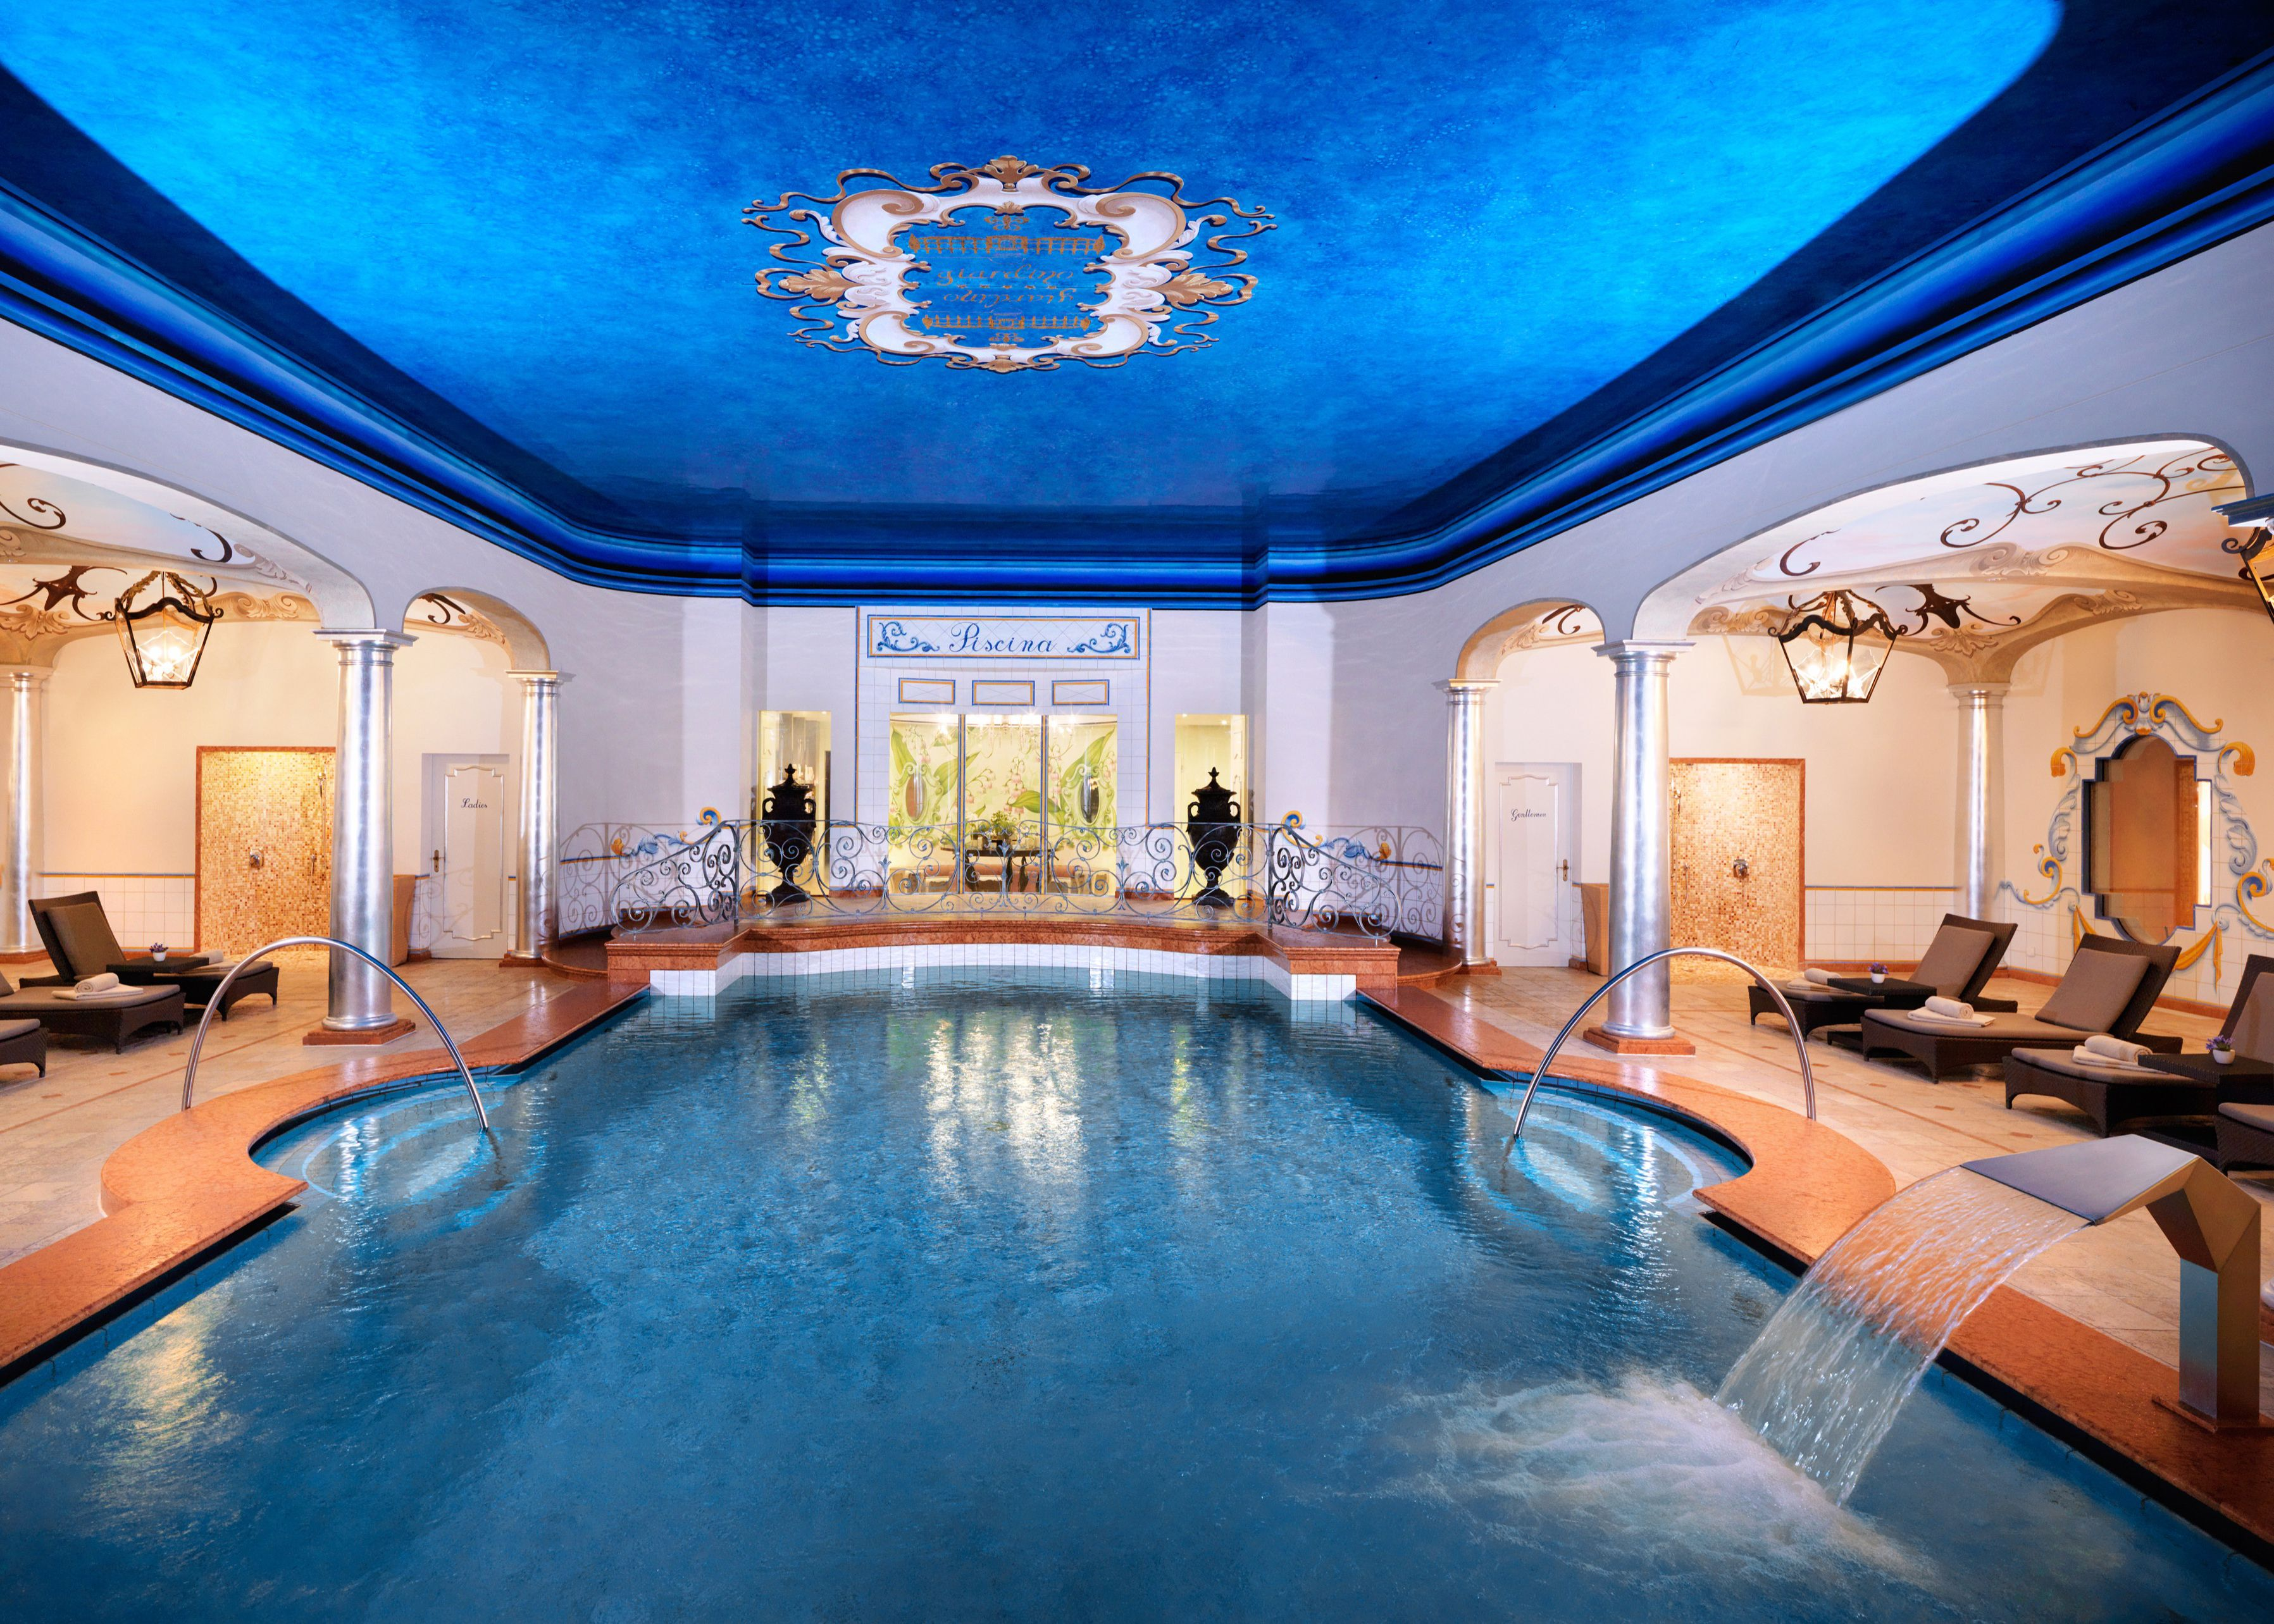 9 Remote Spa Getaways Where No One Can Bother You Smartertravel Hotel Spa Getaways Ascona